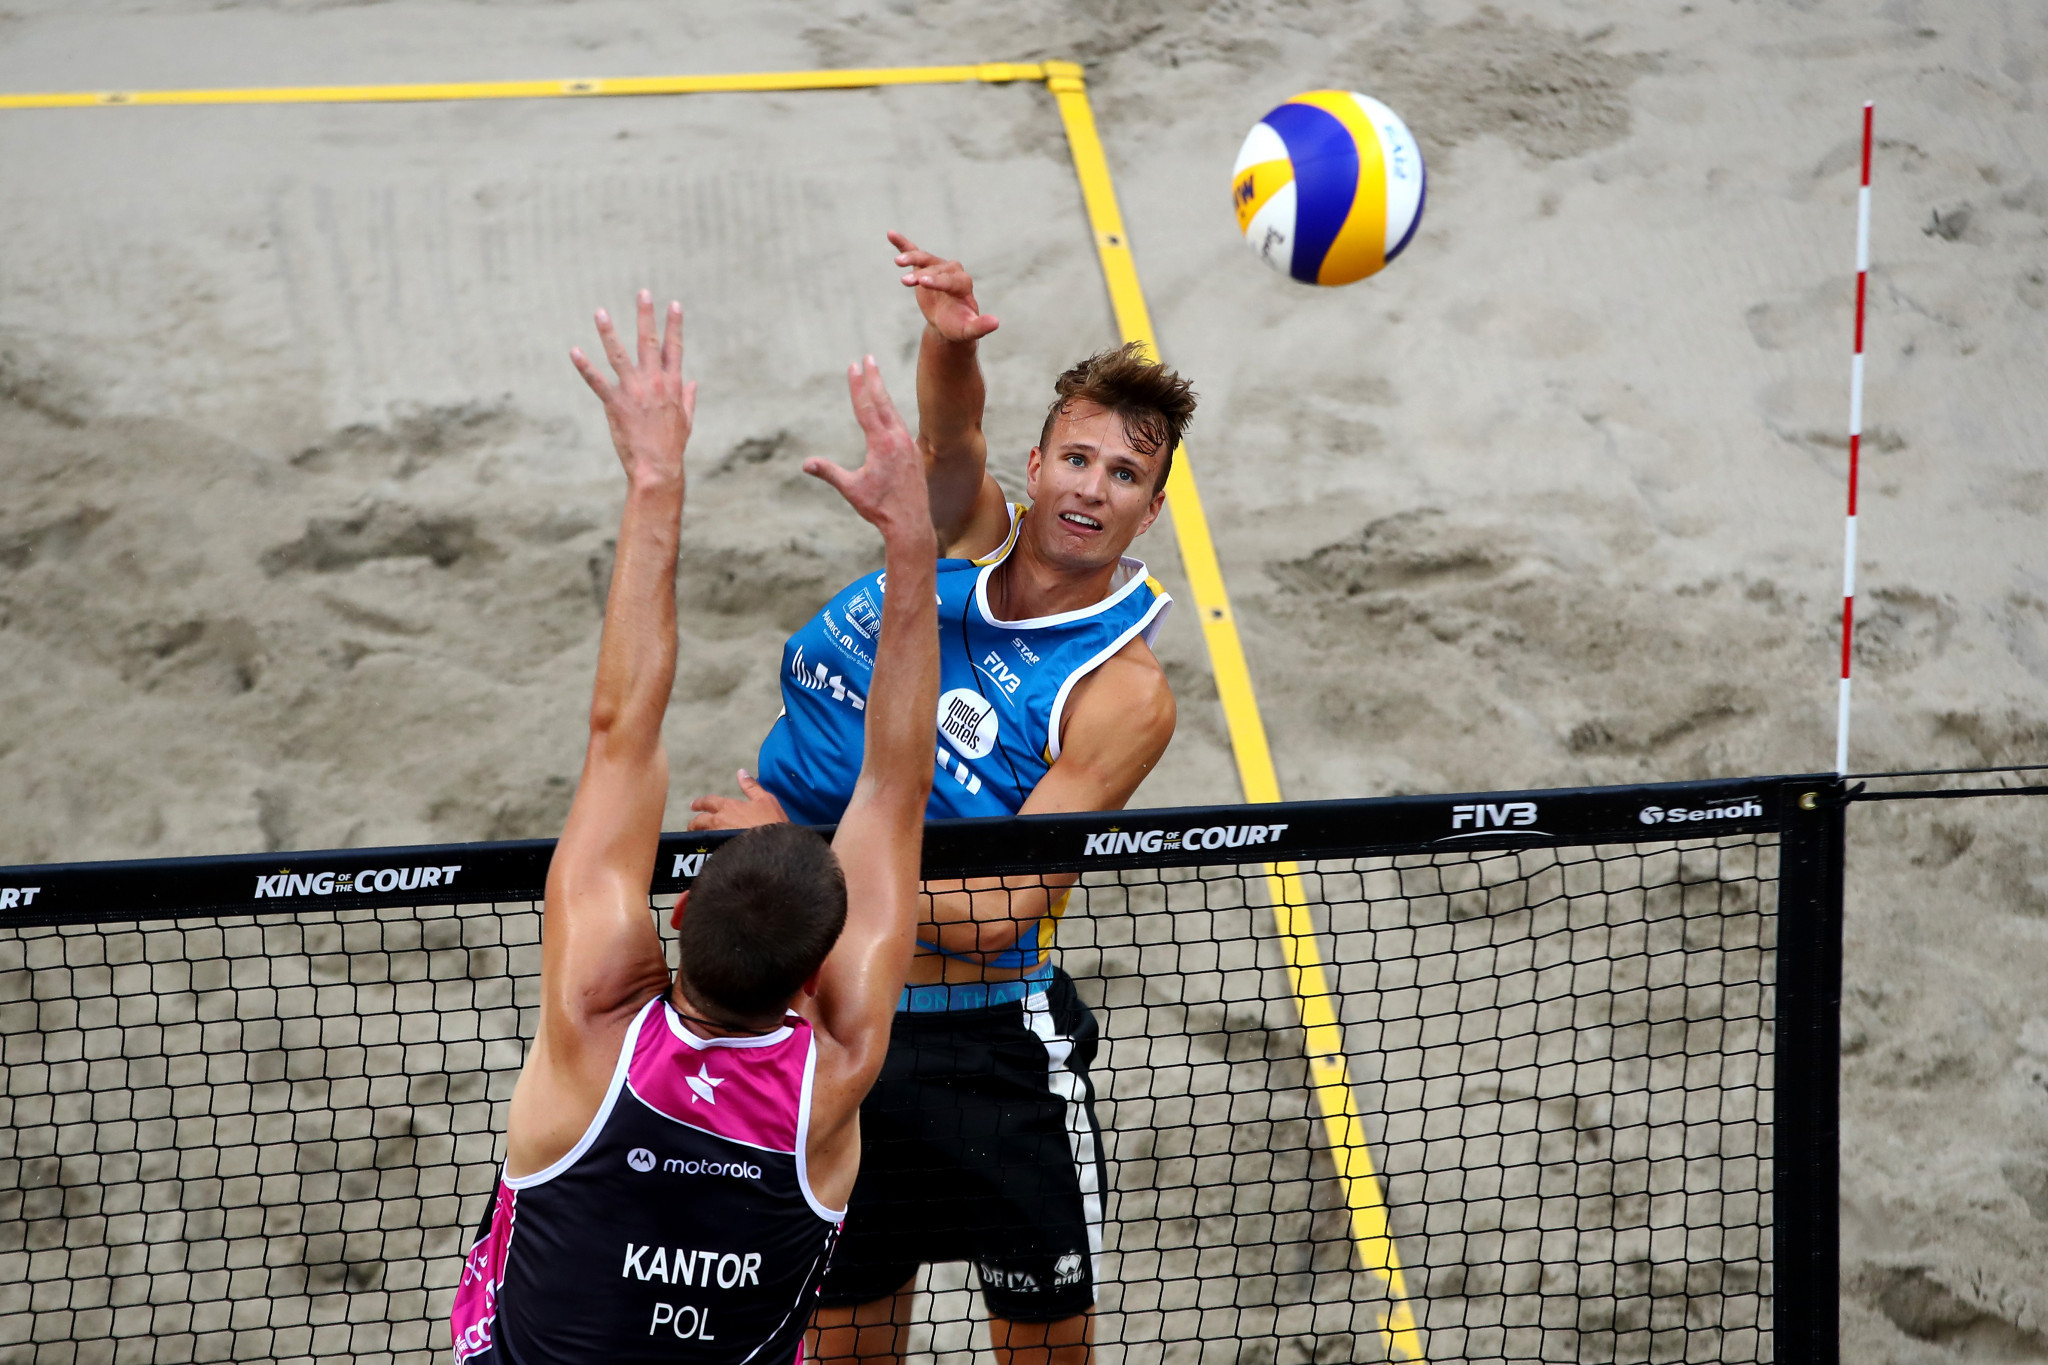 Yorick de Groot teamed up with Stefan Boesmans to win the Beach Volleyball World Tour event in Gstaad ©Getty Images